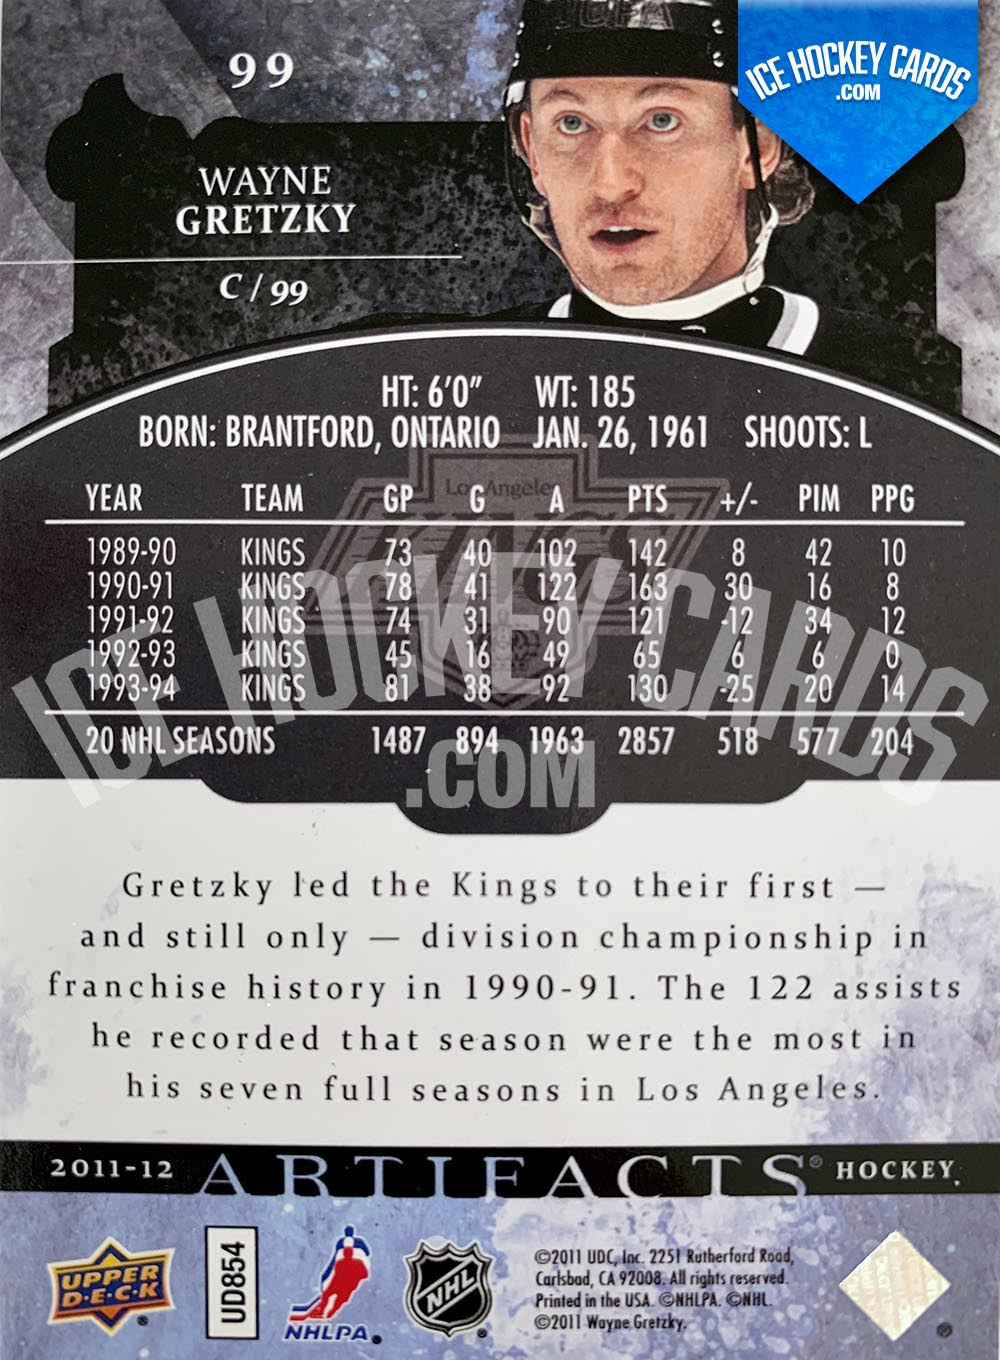 Upper Deck - Artifacts 2011-12 - Wayne Gretzky Base Card back